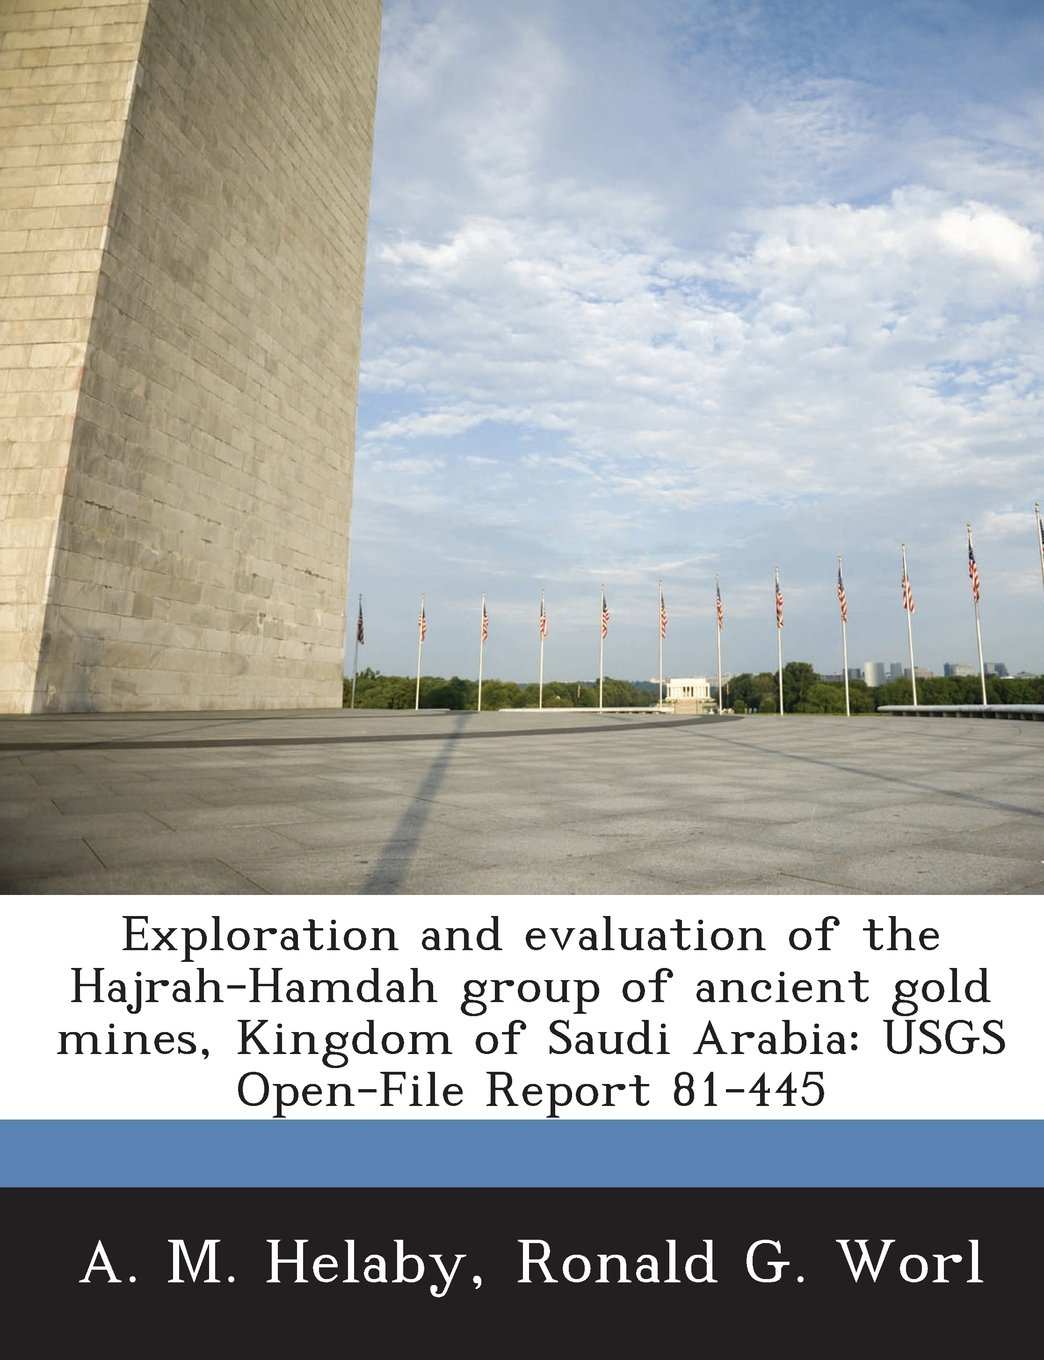 Exploration and evaluation of the Hajrah-Hamdah group of ancient gold mines, Kingdom of Saudi Arabia: USGS Open-File Report 81-445 ebook